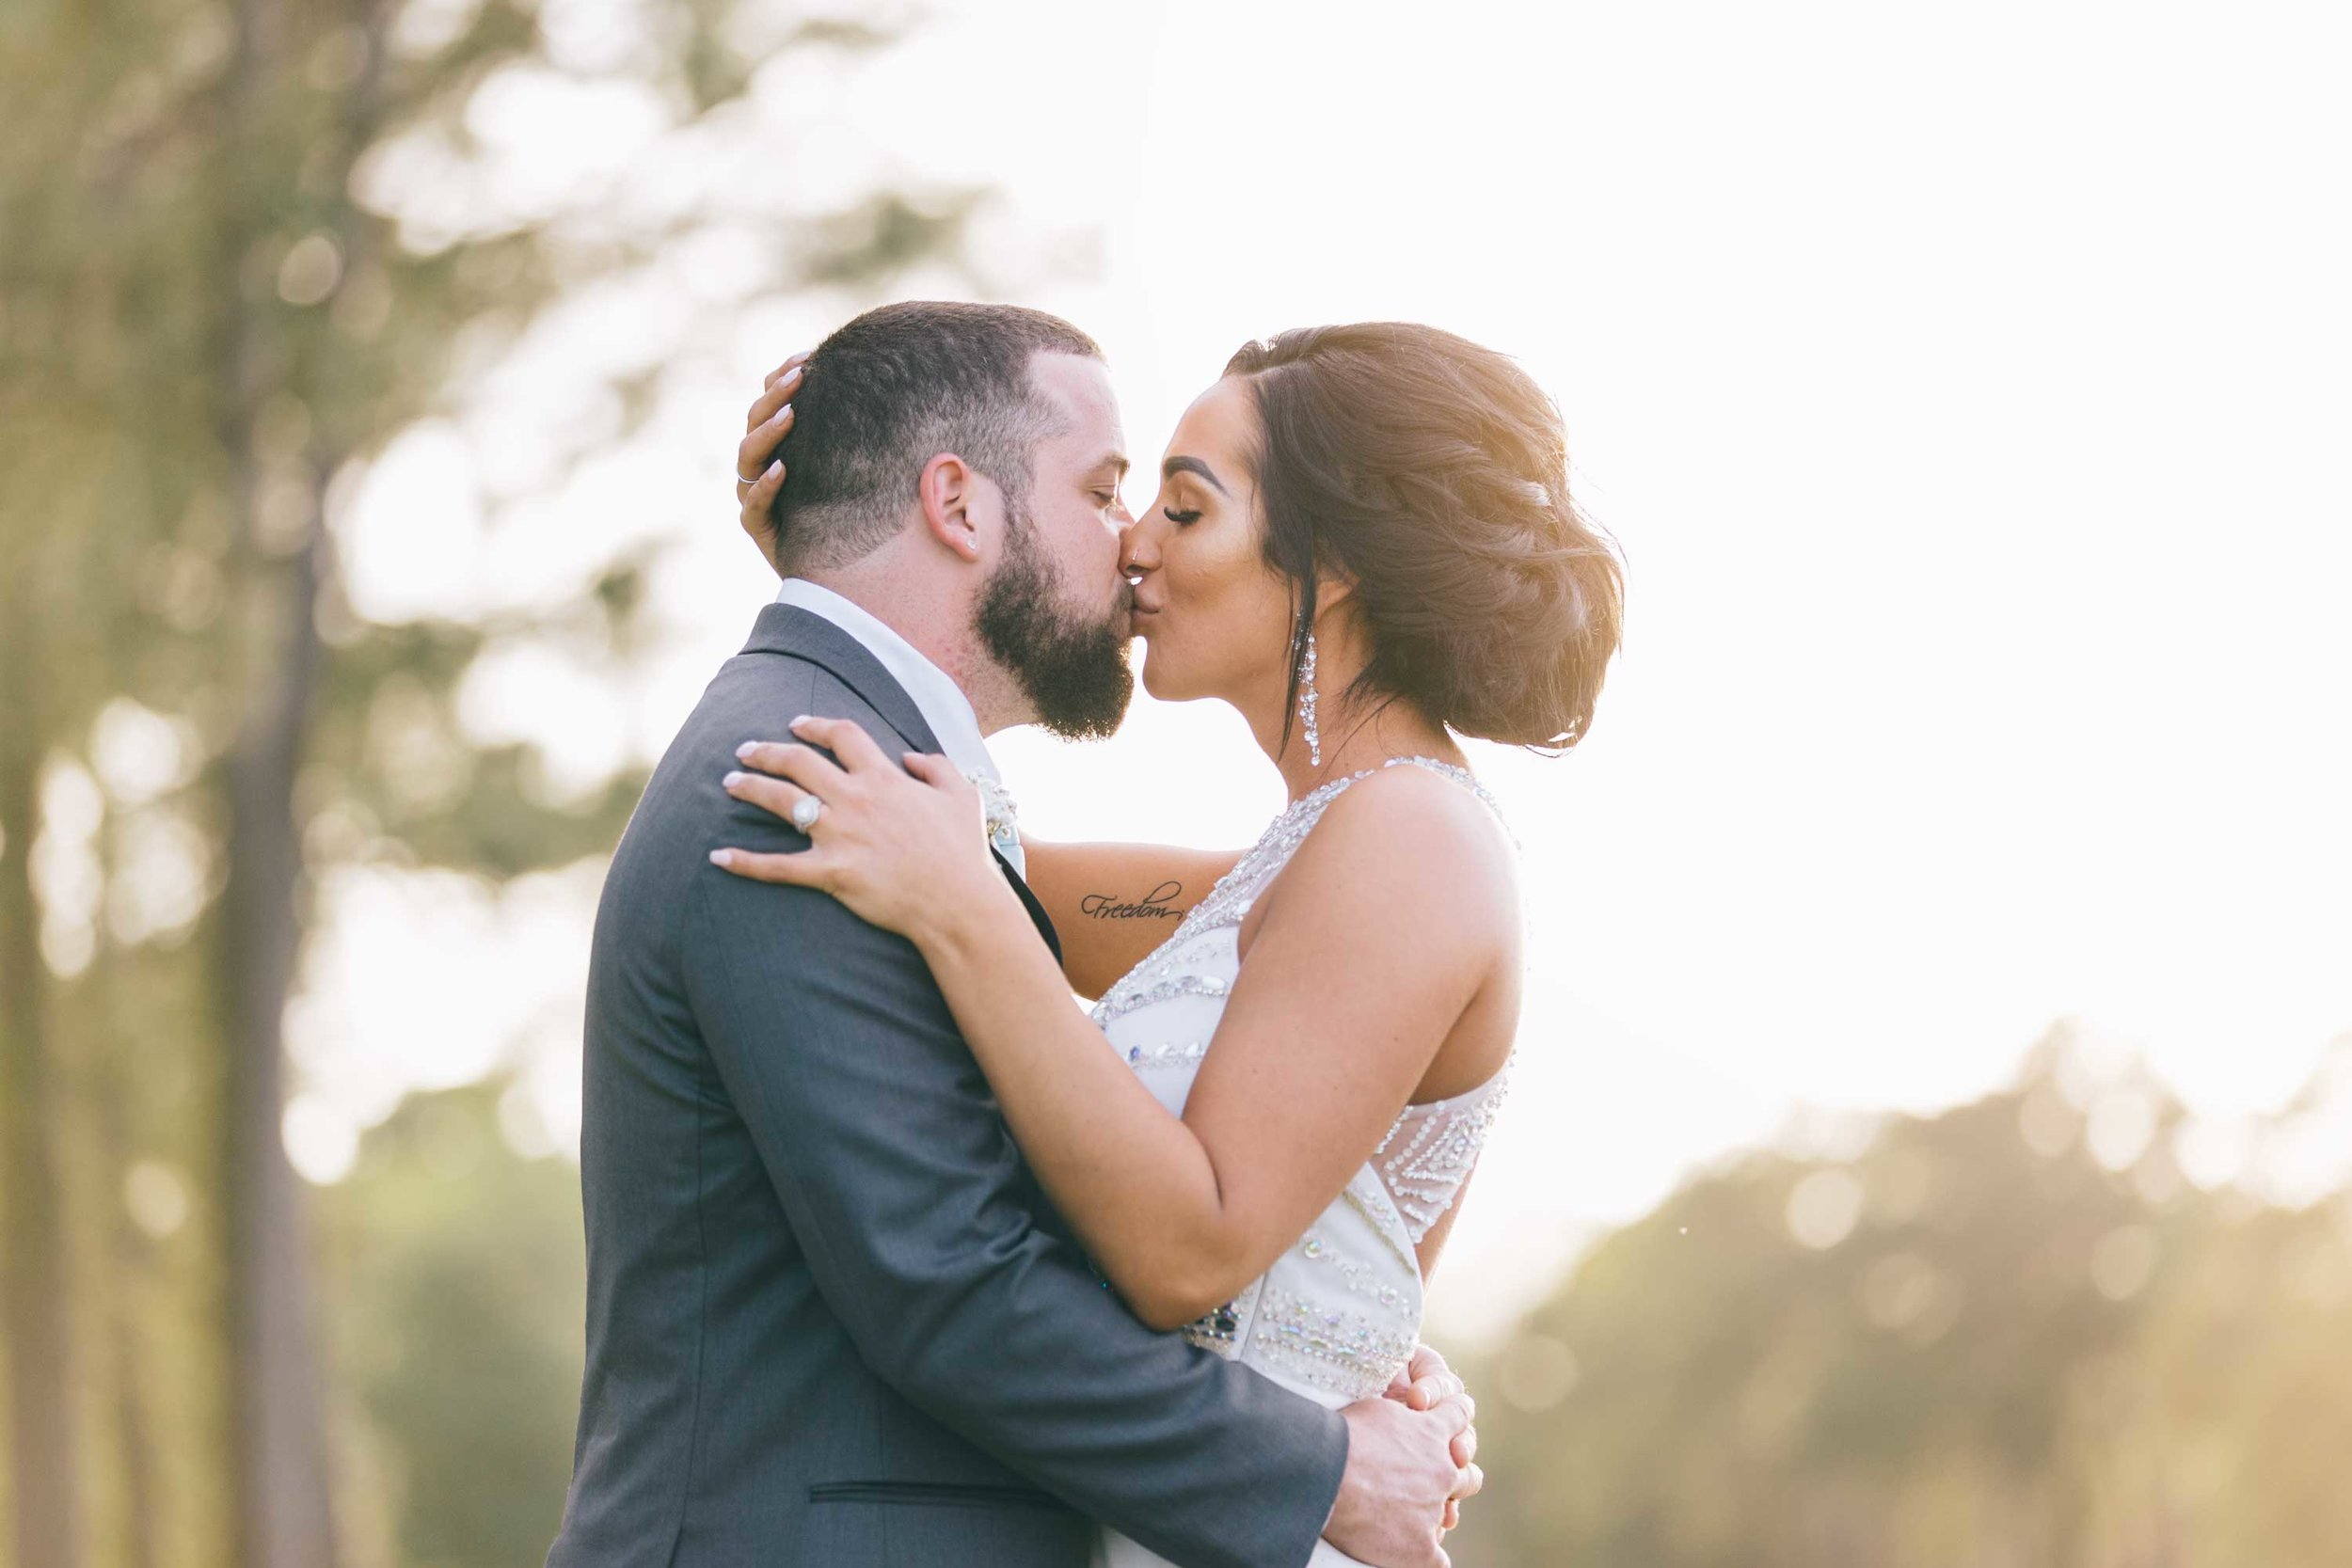 Wedding Photography - Capture your special day